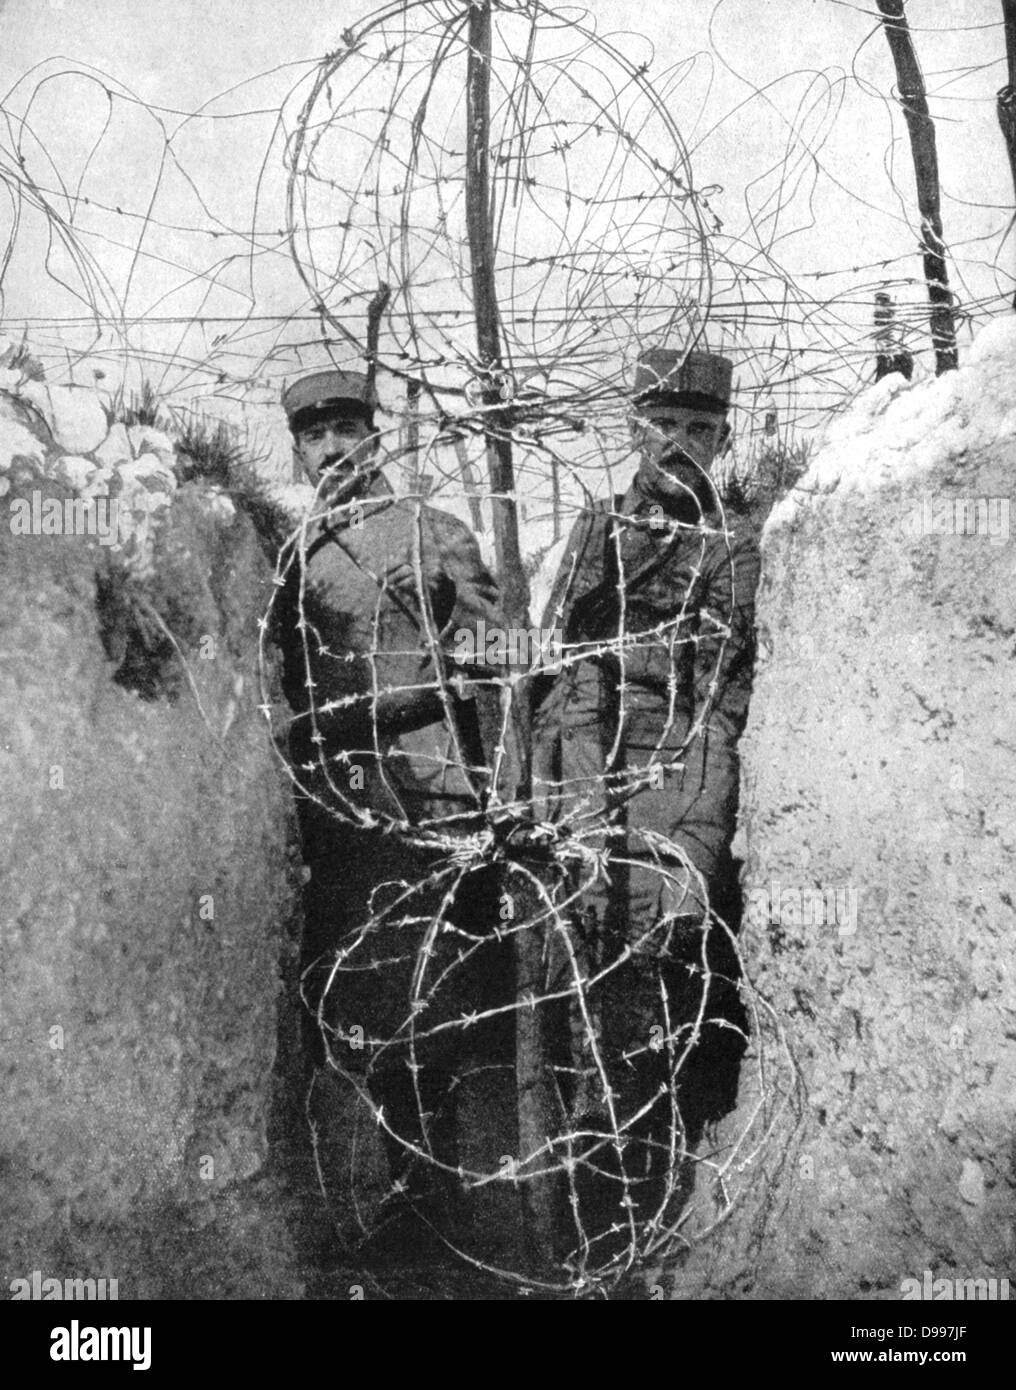 World war i barbed wire entaglements protecting